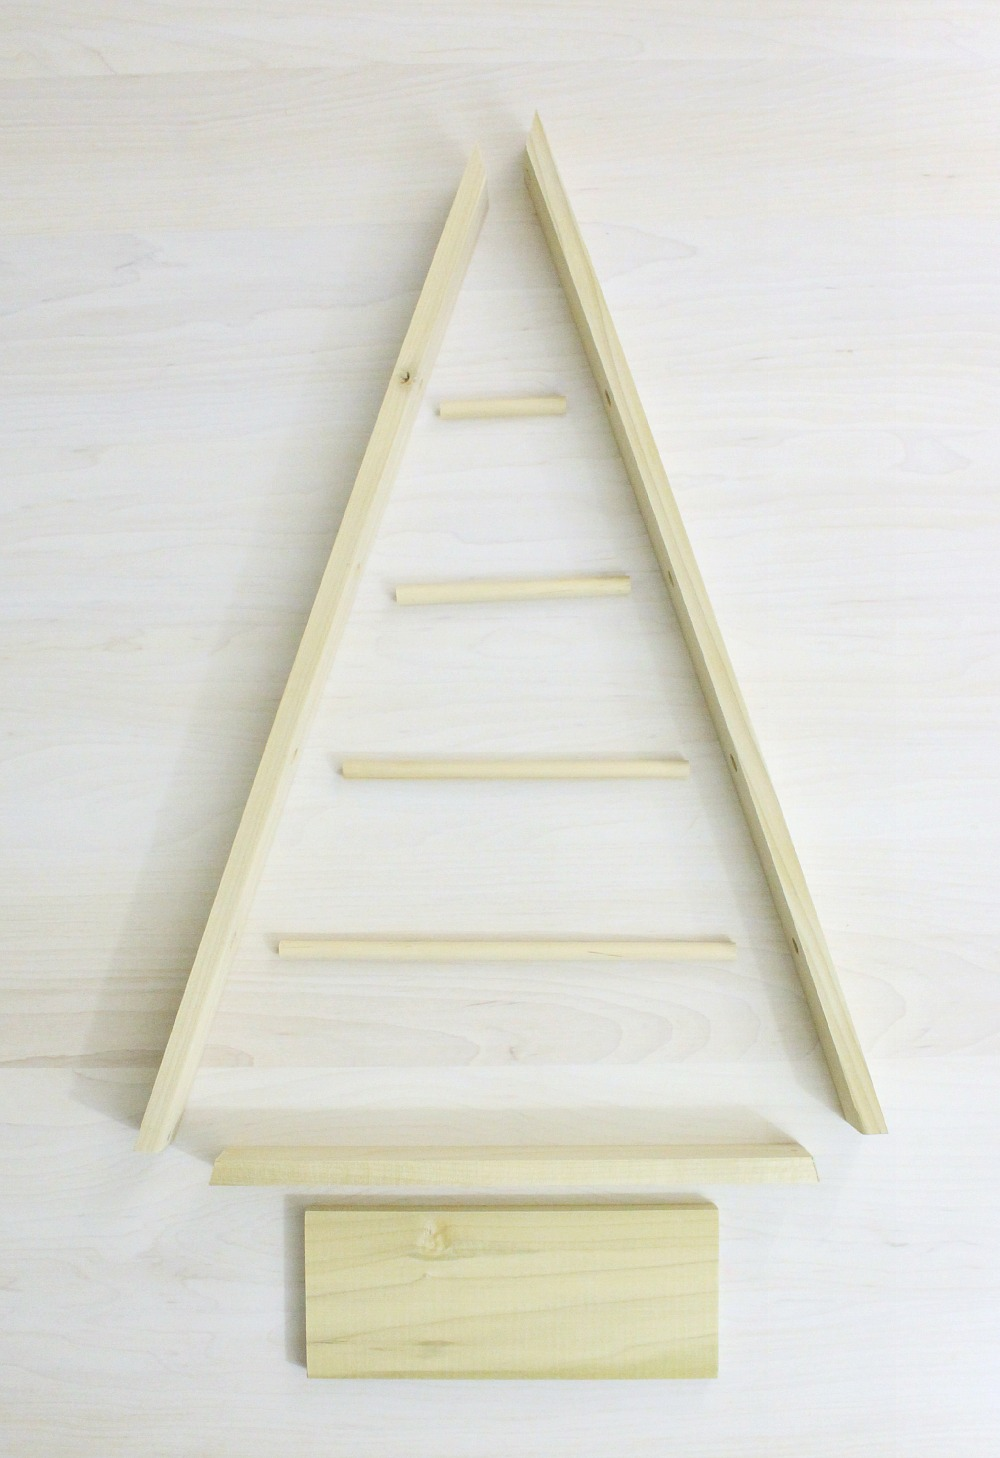 A-frame ornament display